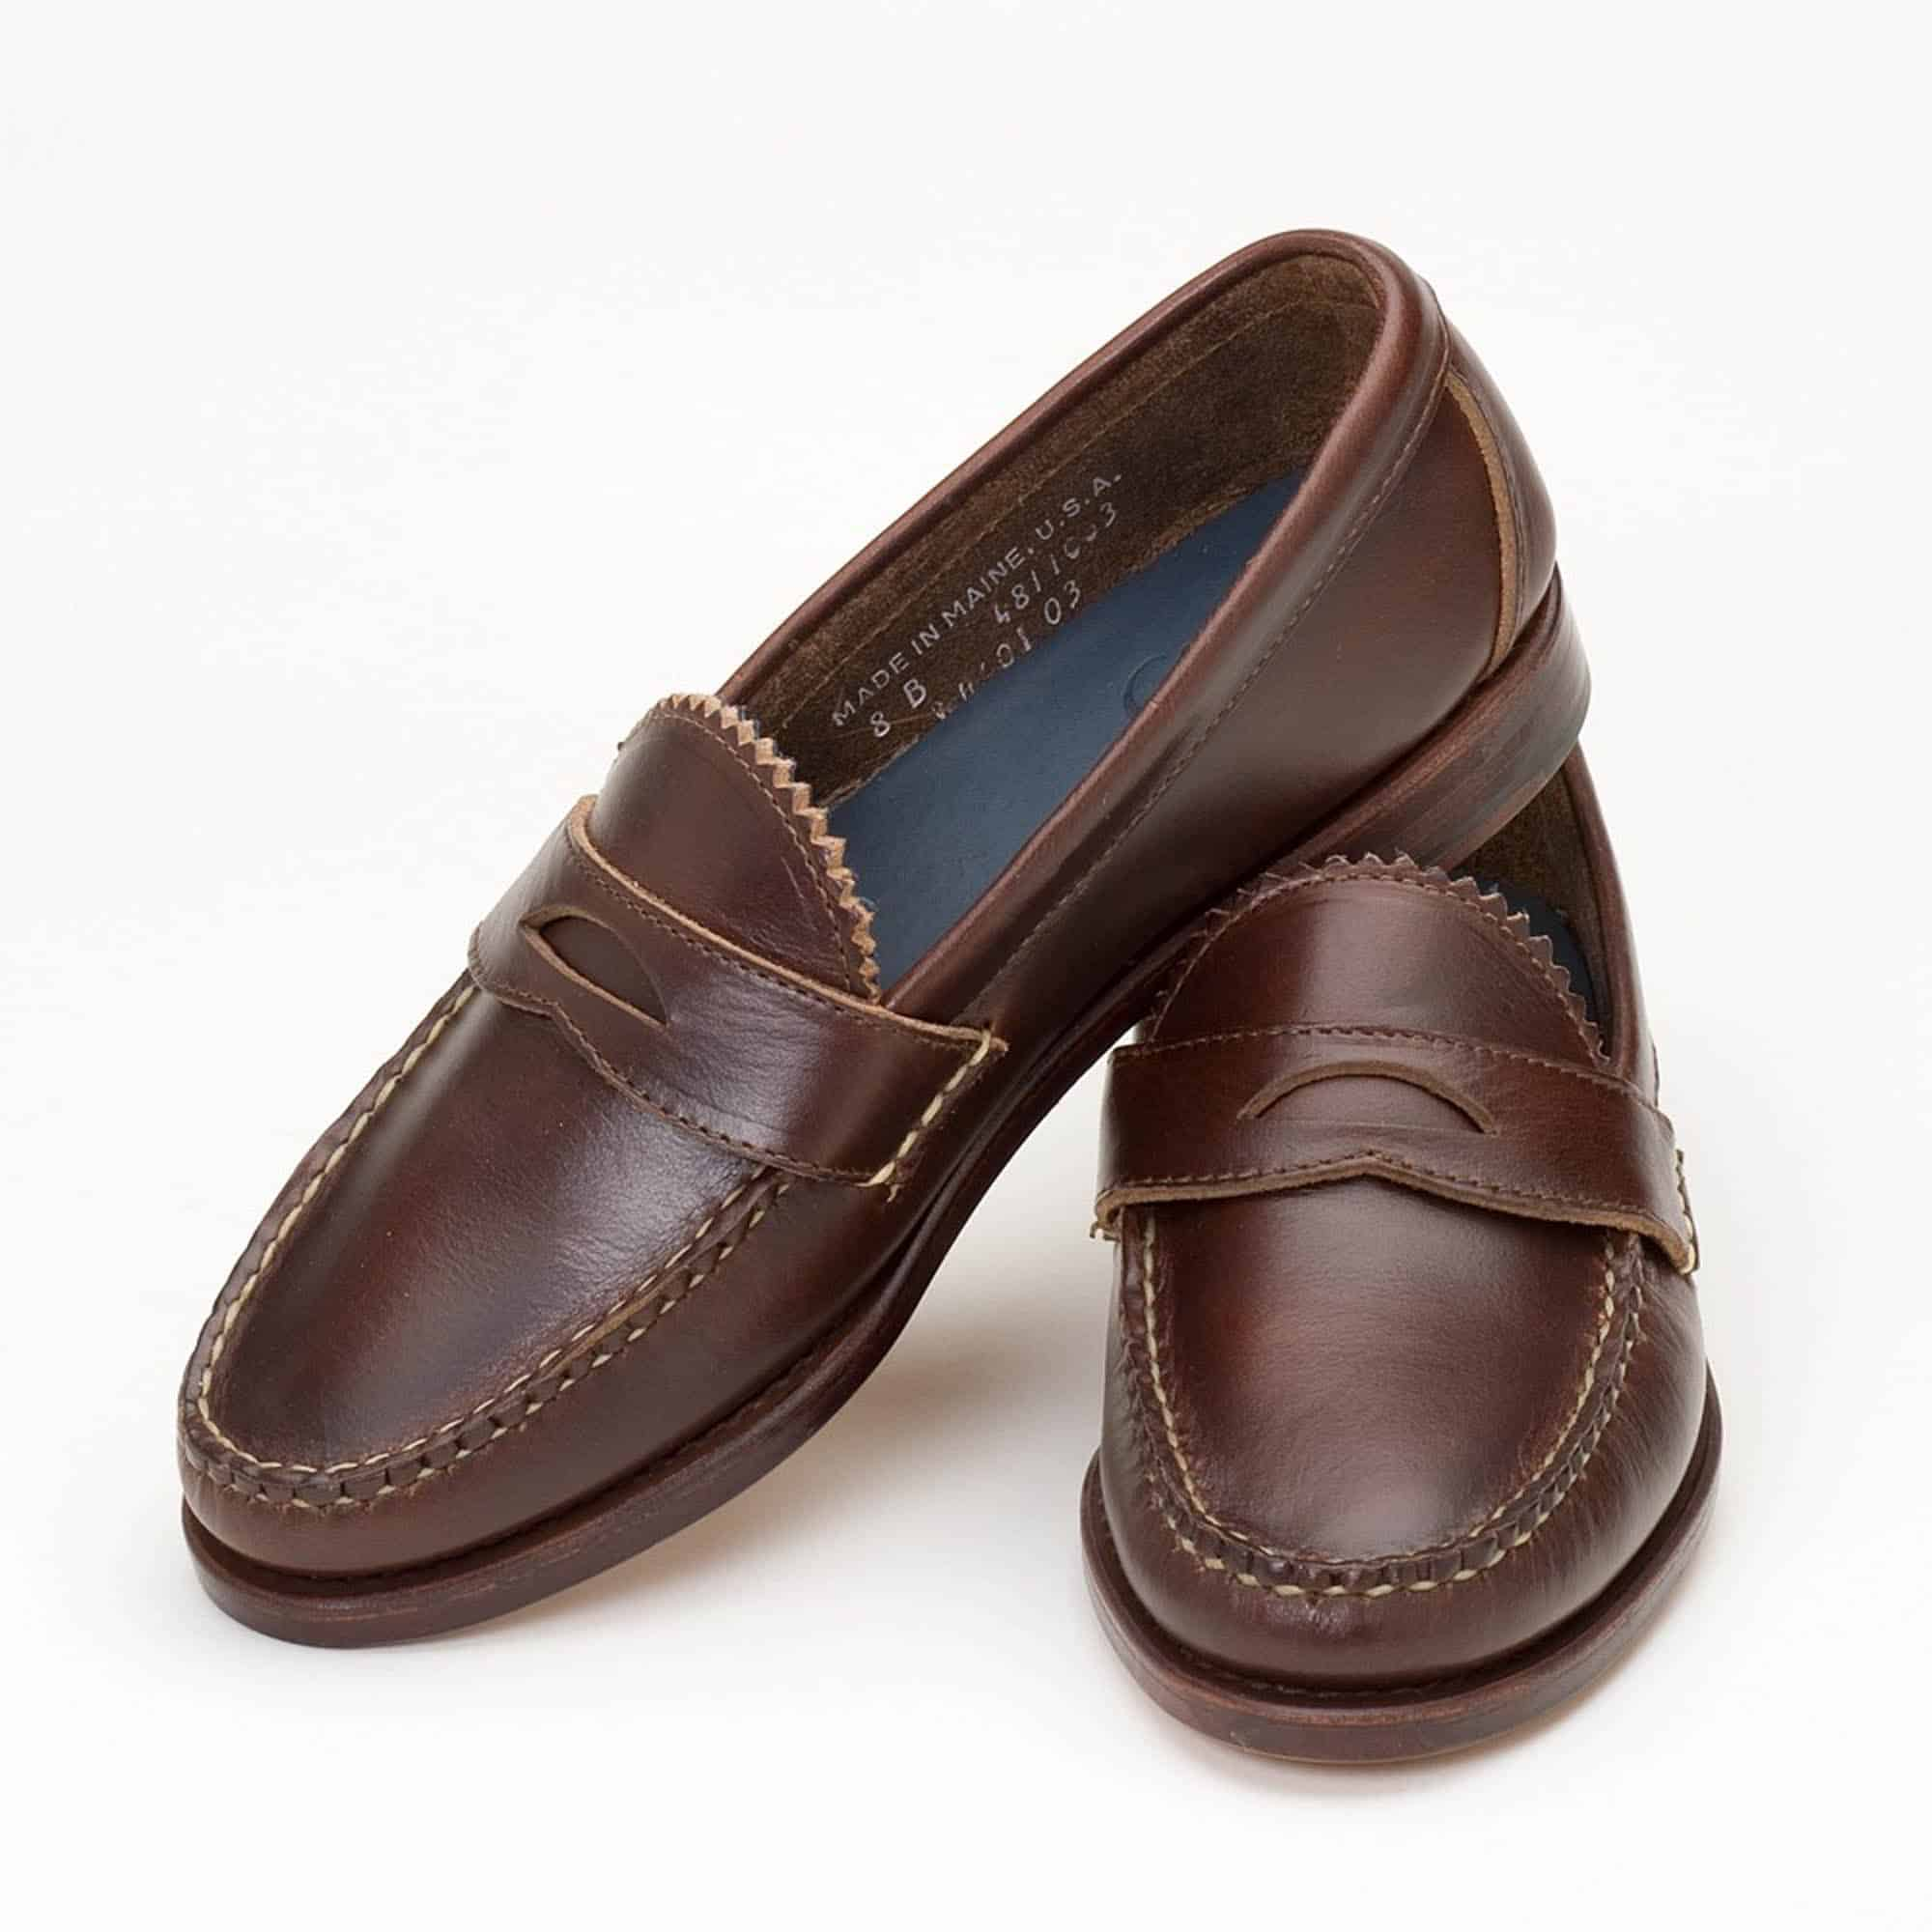 Shop online for Men's Slip-On Loafers, Driving Shoes & Moccasins at palmmetrf1.ga Find boat shoes & mules. Free Shipping. Free Returns. All the time.